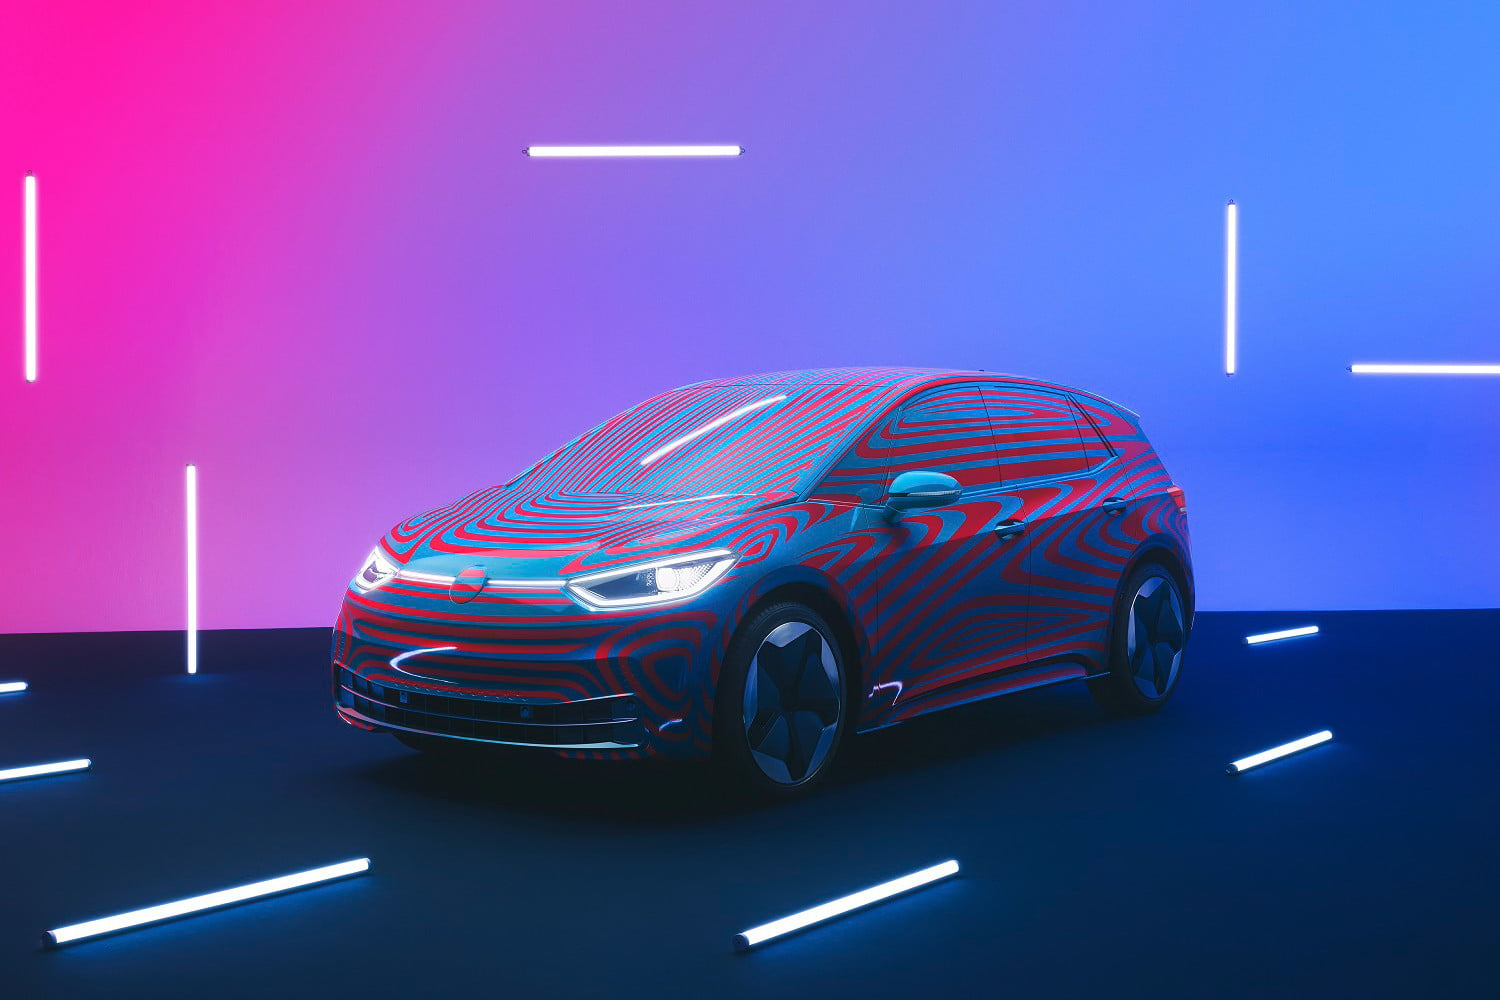 2020 volkswagen id3 will influence full lineup of evs